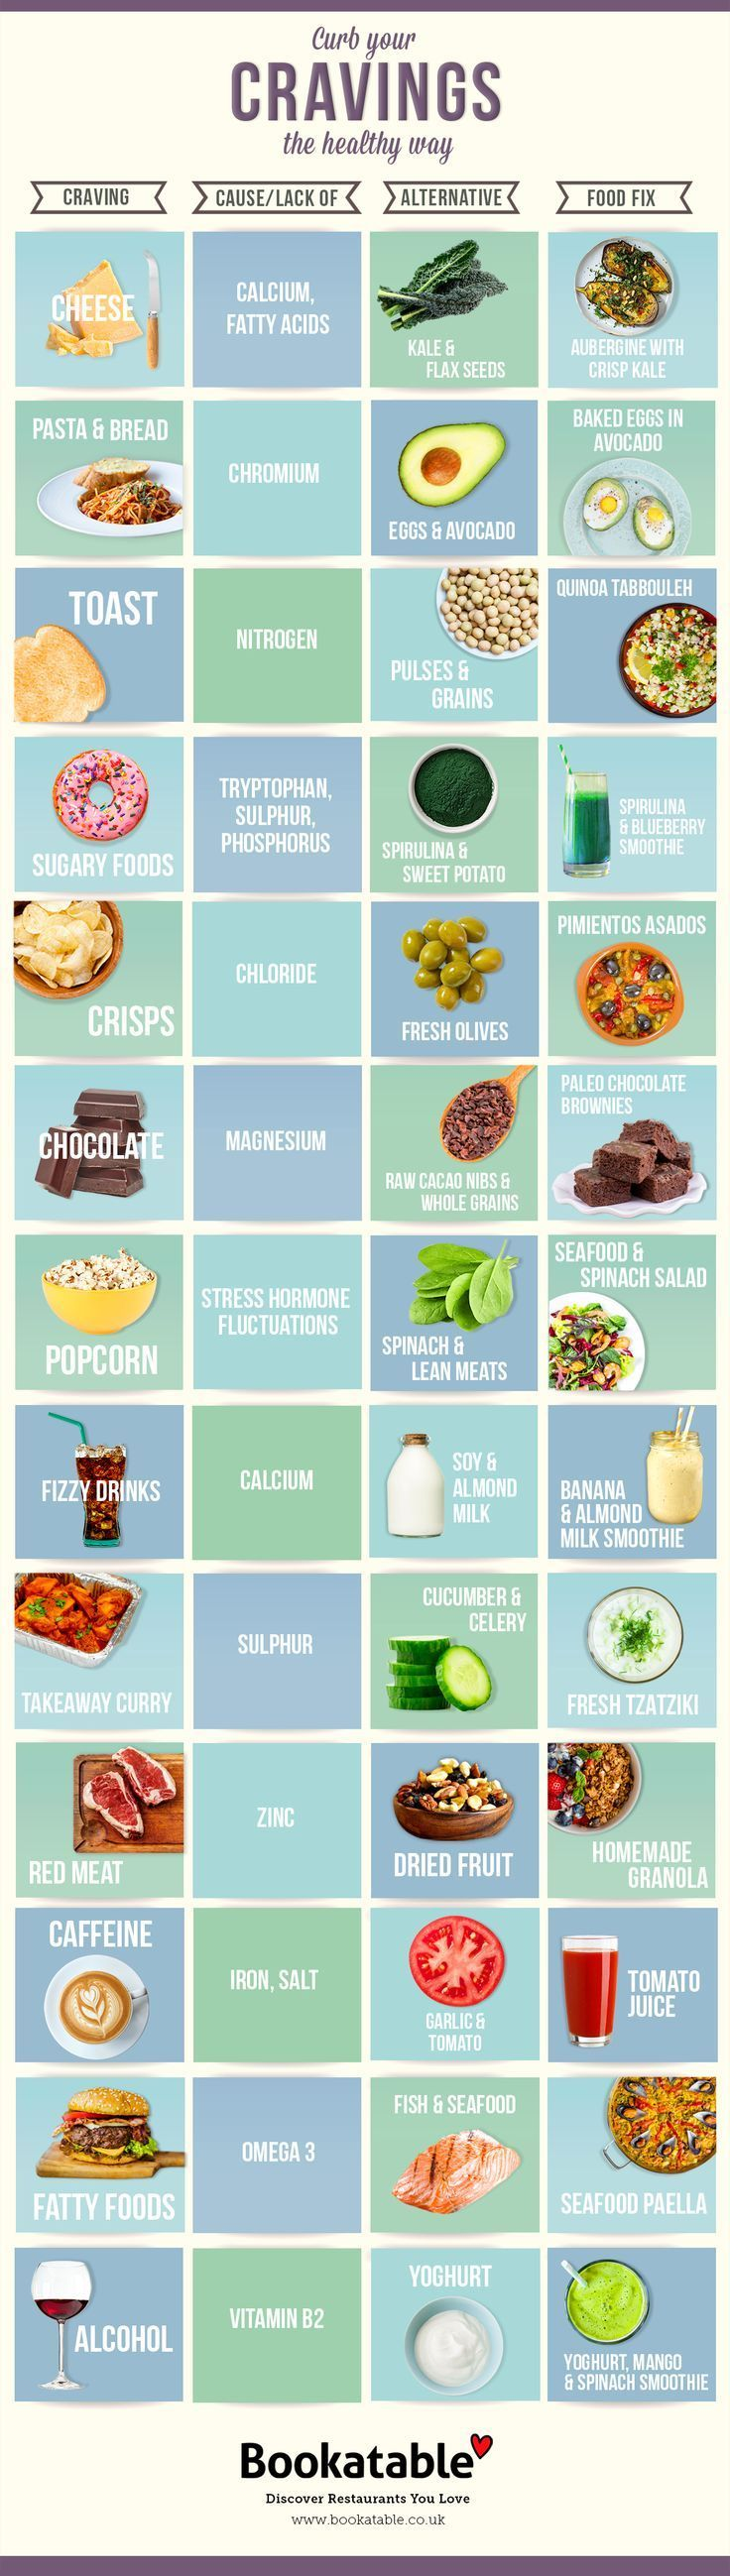 For good health what to eat - Curb Your Cravings The Healthy Way Infographic